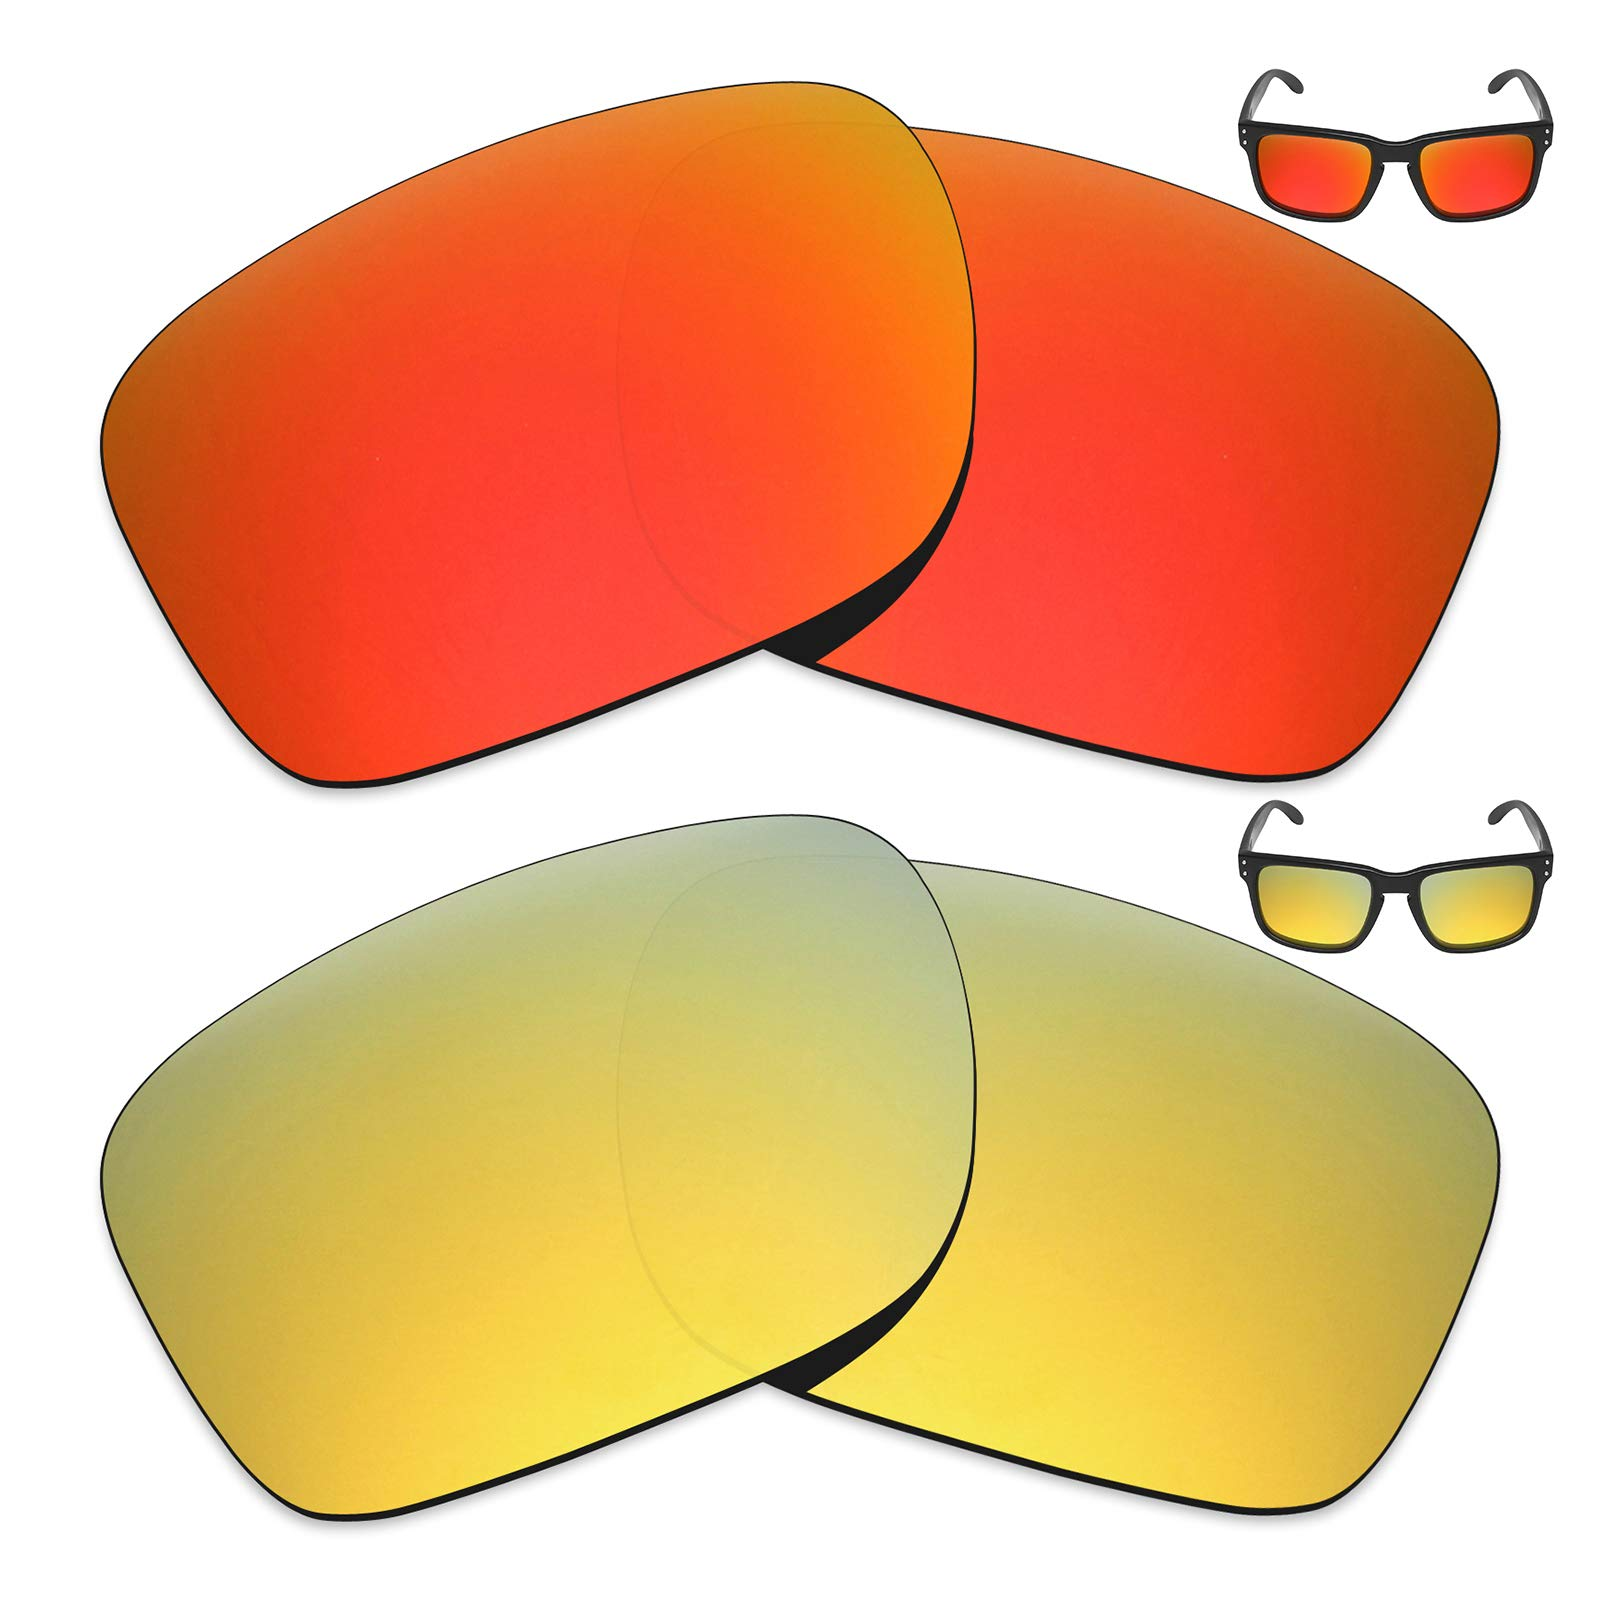 Mryok 2 Pair Polarized Replacement Lenses for Oakley Holbrook Sunglass - Options by Mryok